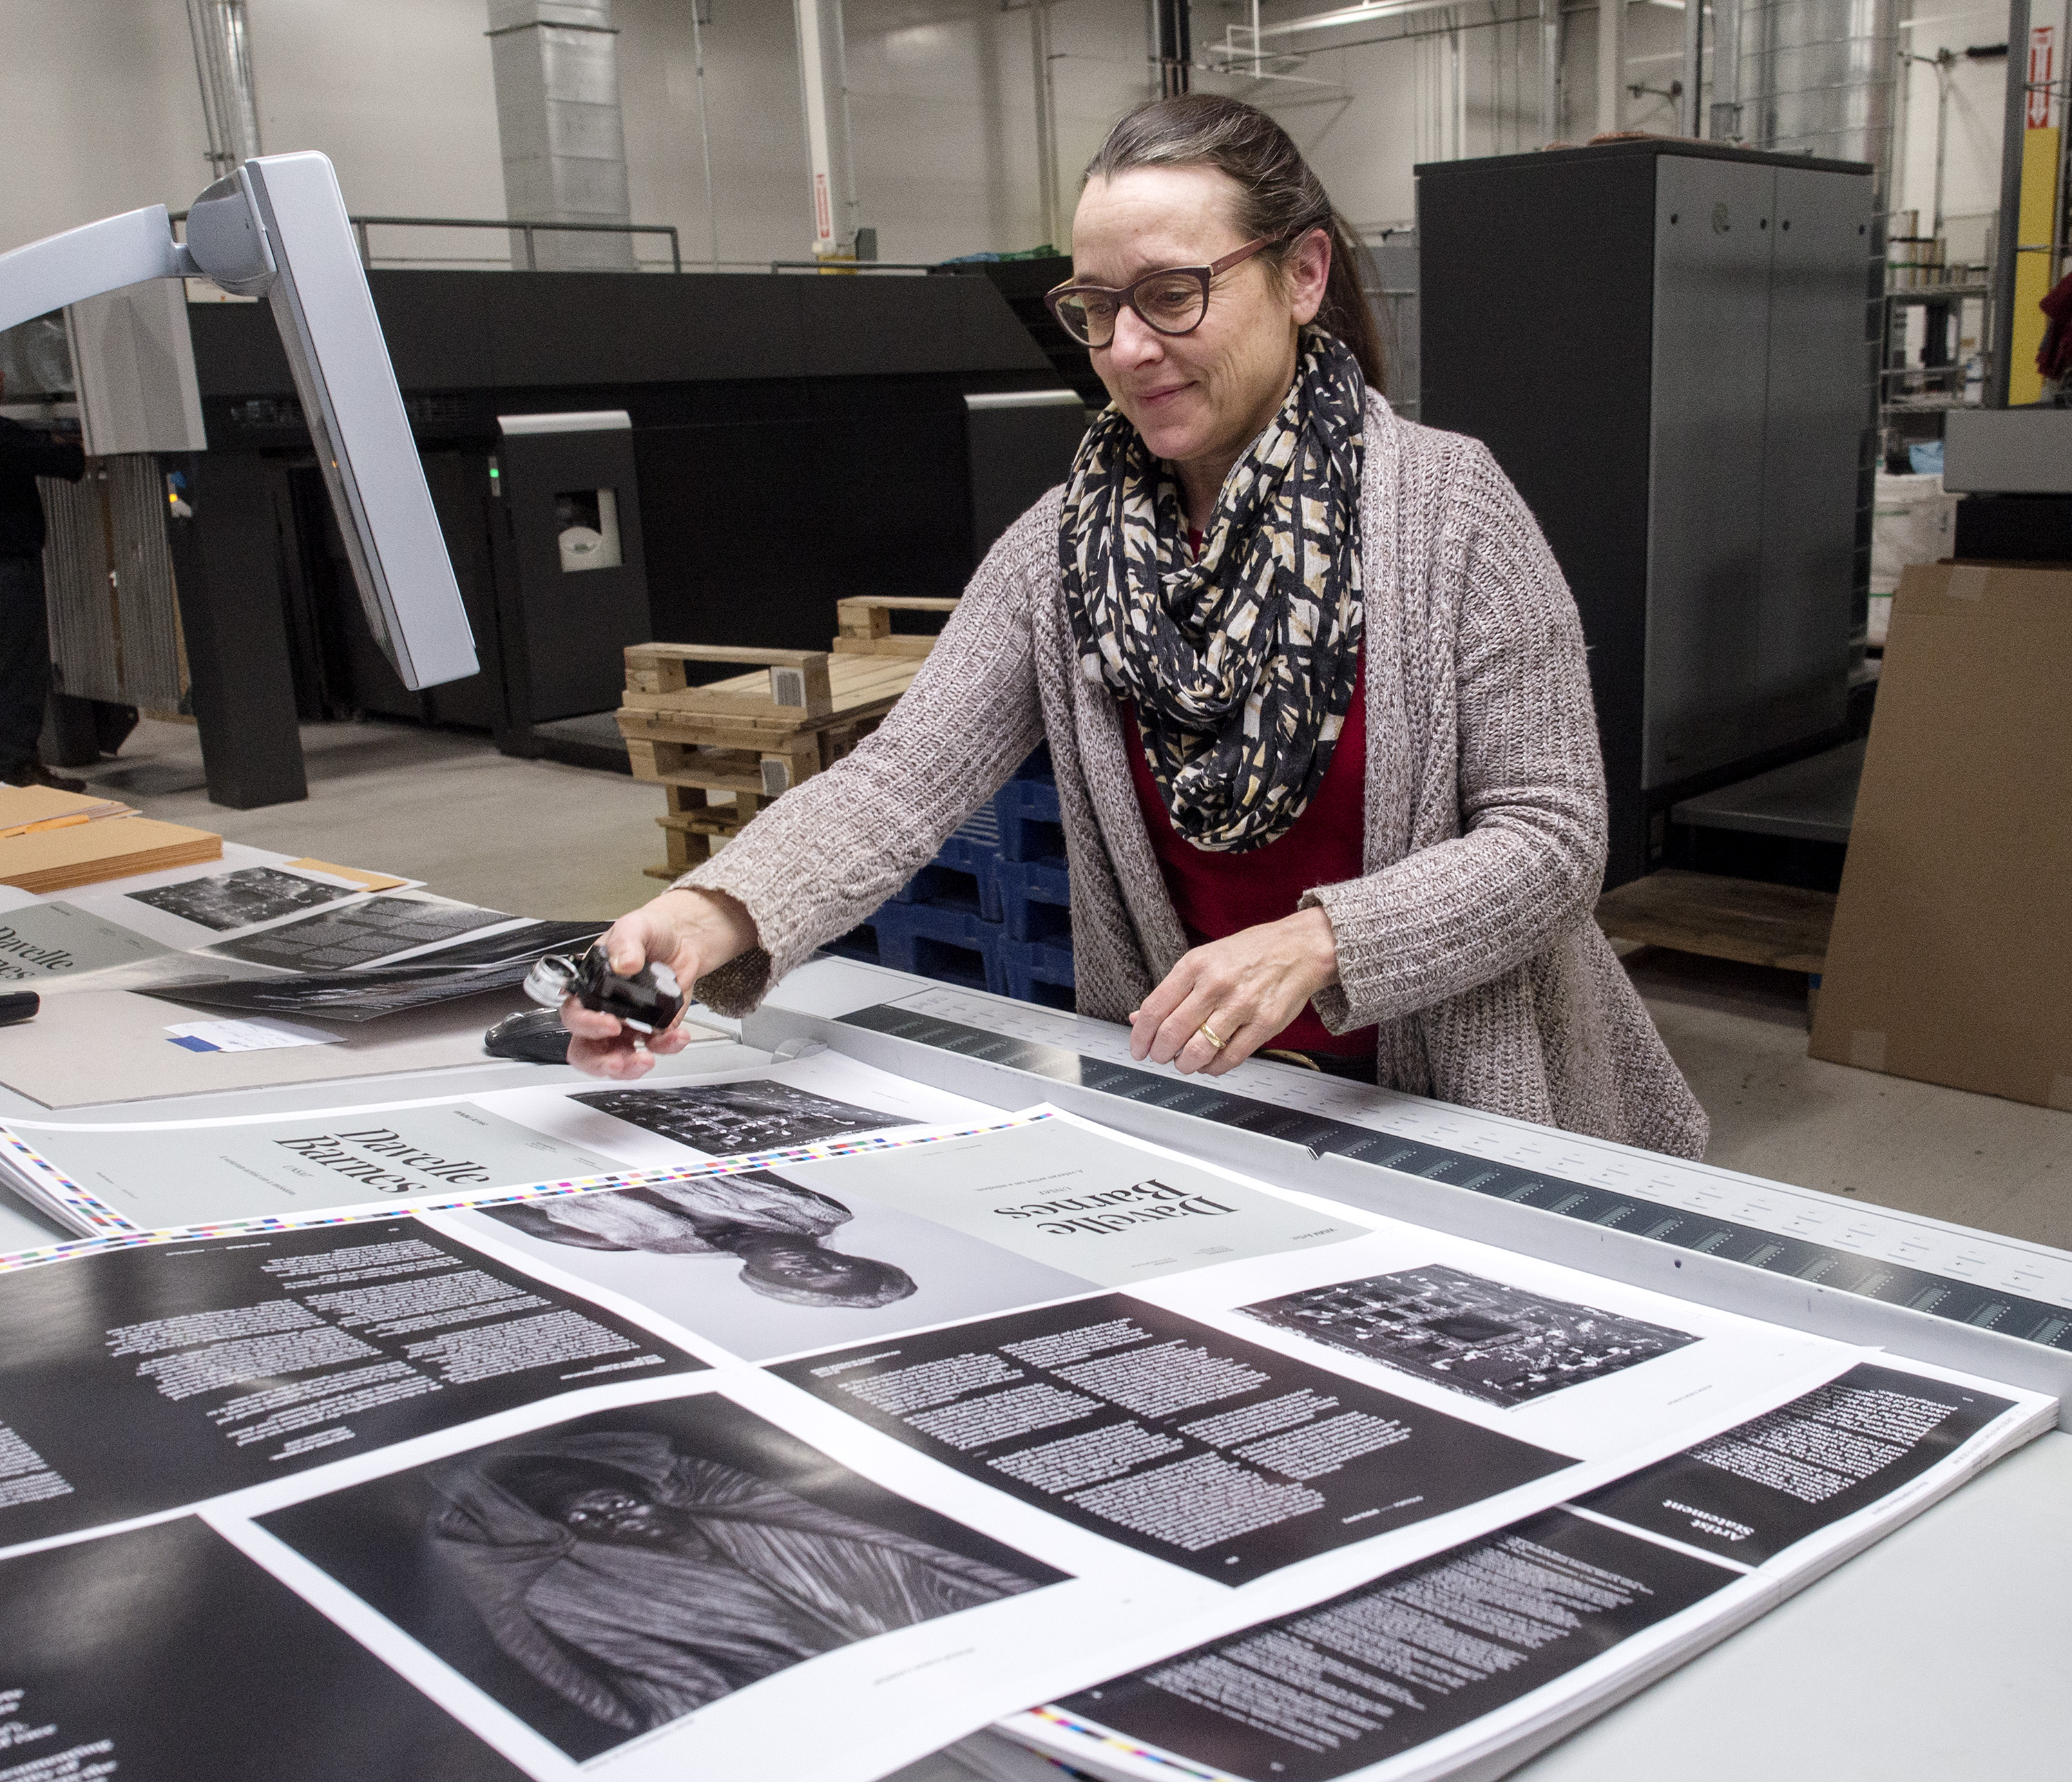 A Provocation Project for Philadelphia Photo Arts Center